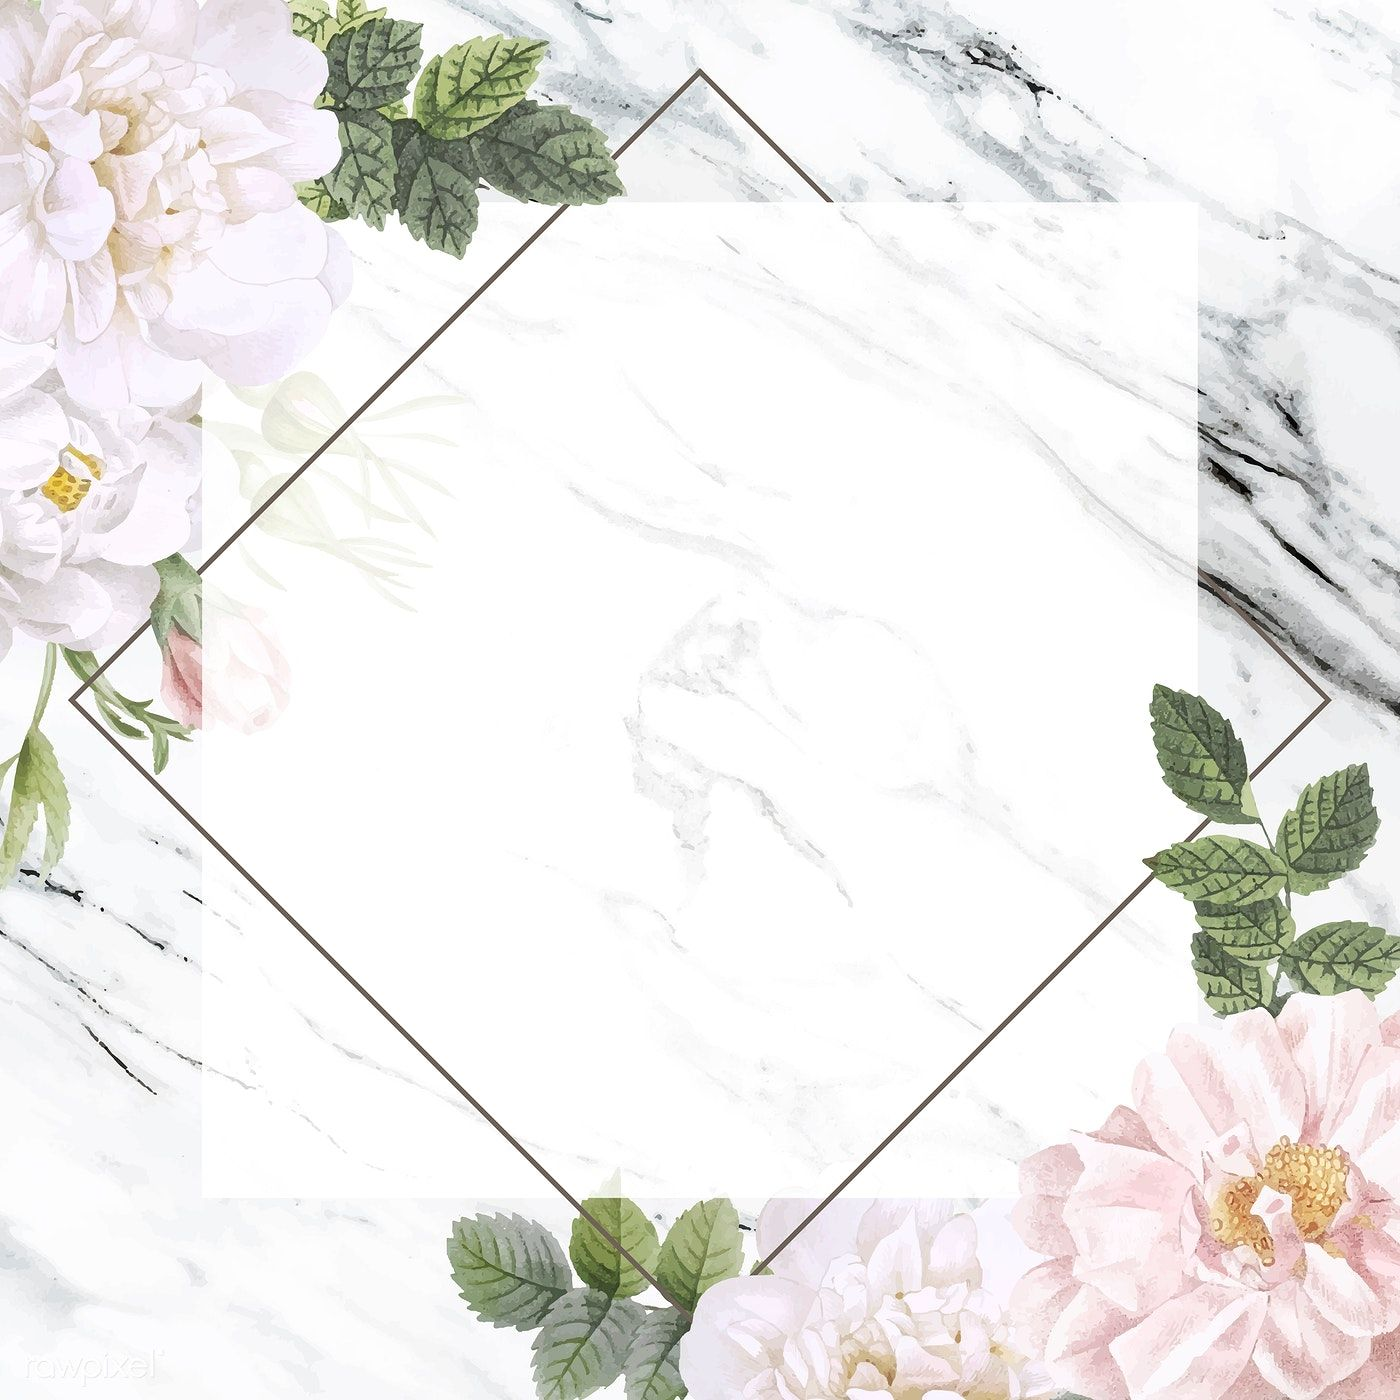 Frame On A Marble Background With Musk Rose Vector Free Image By Rawpixel Com Marble Background Floral Background Flower Backgrounds